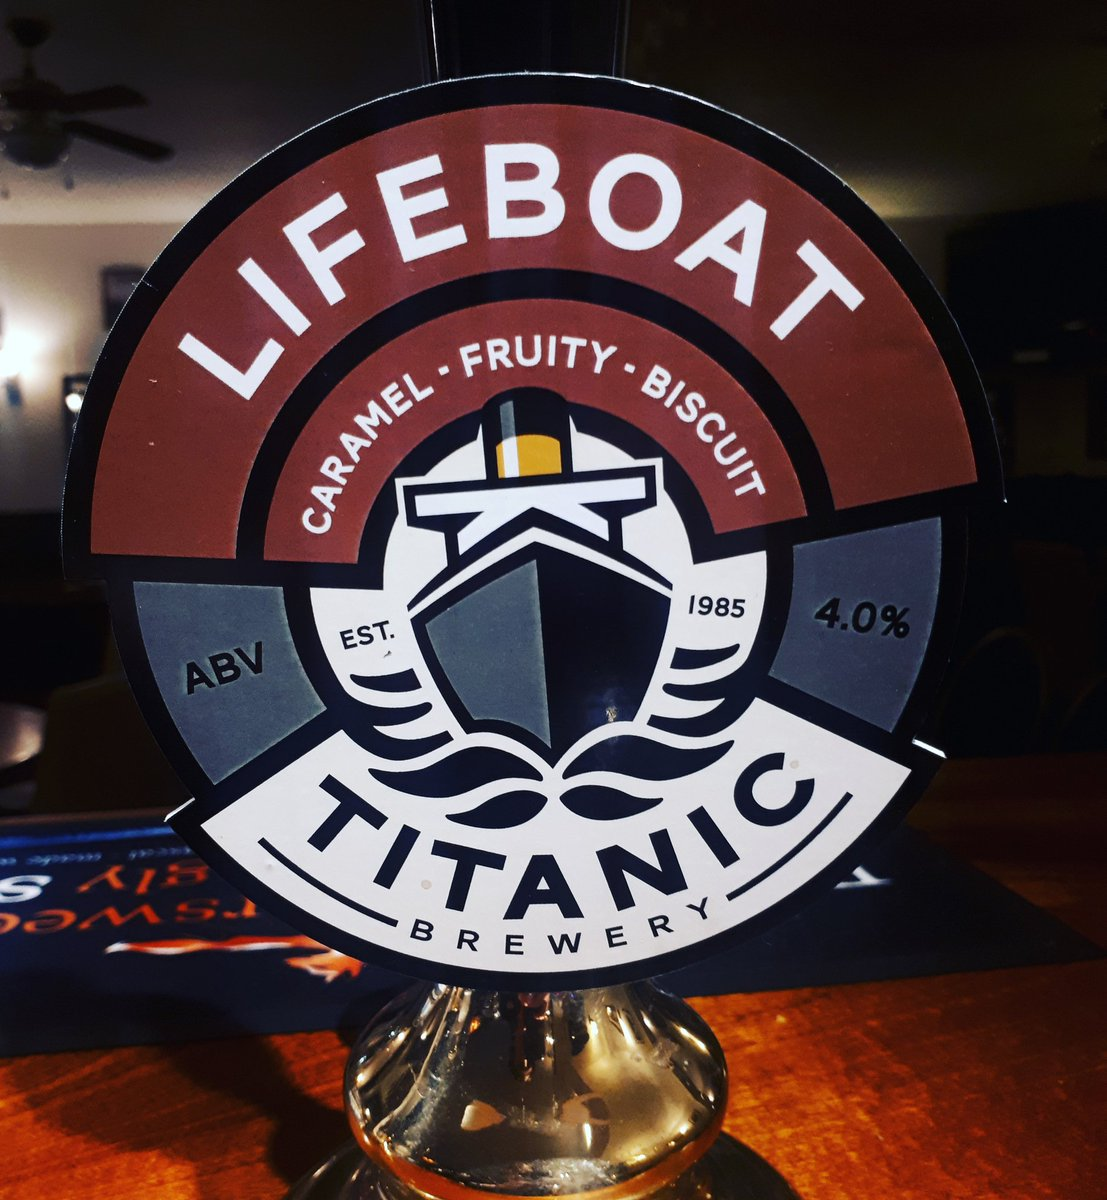 Hoppy Friday! 🍻@Titanic_Brewers @titanicGreig #everydayisabeerfestival #beer #nowserving #onthebar #local #localale #localbrew #friday #hoppy